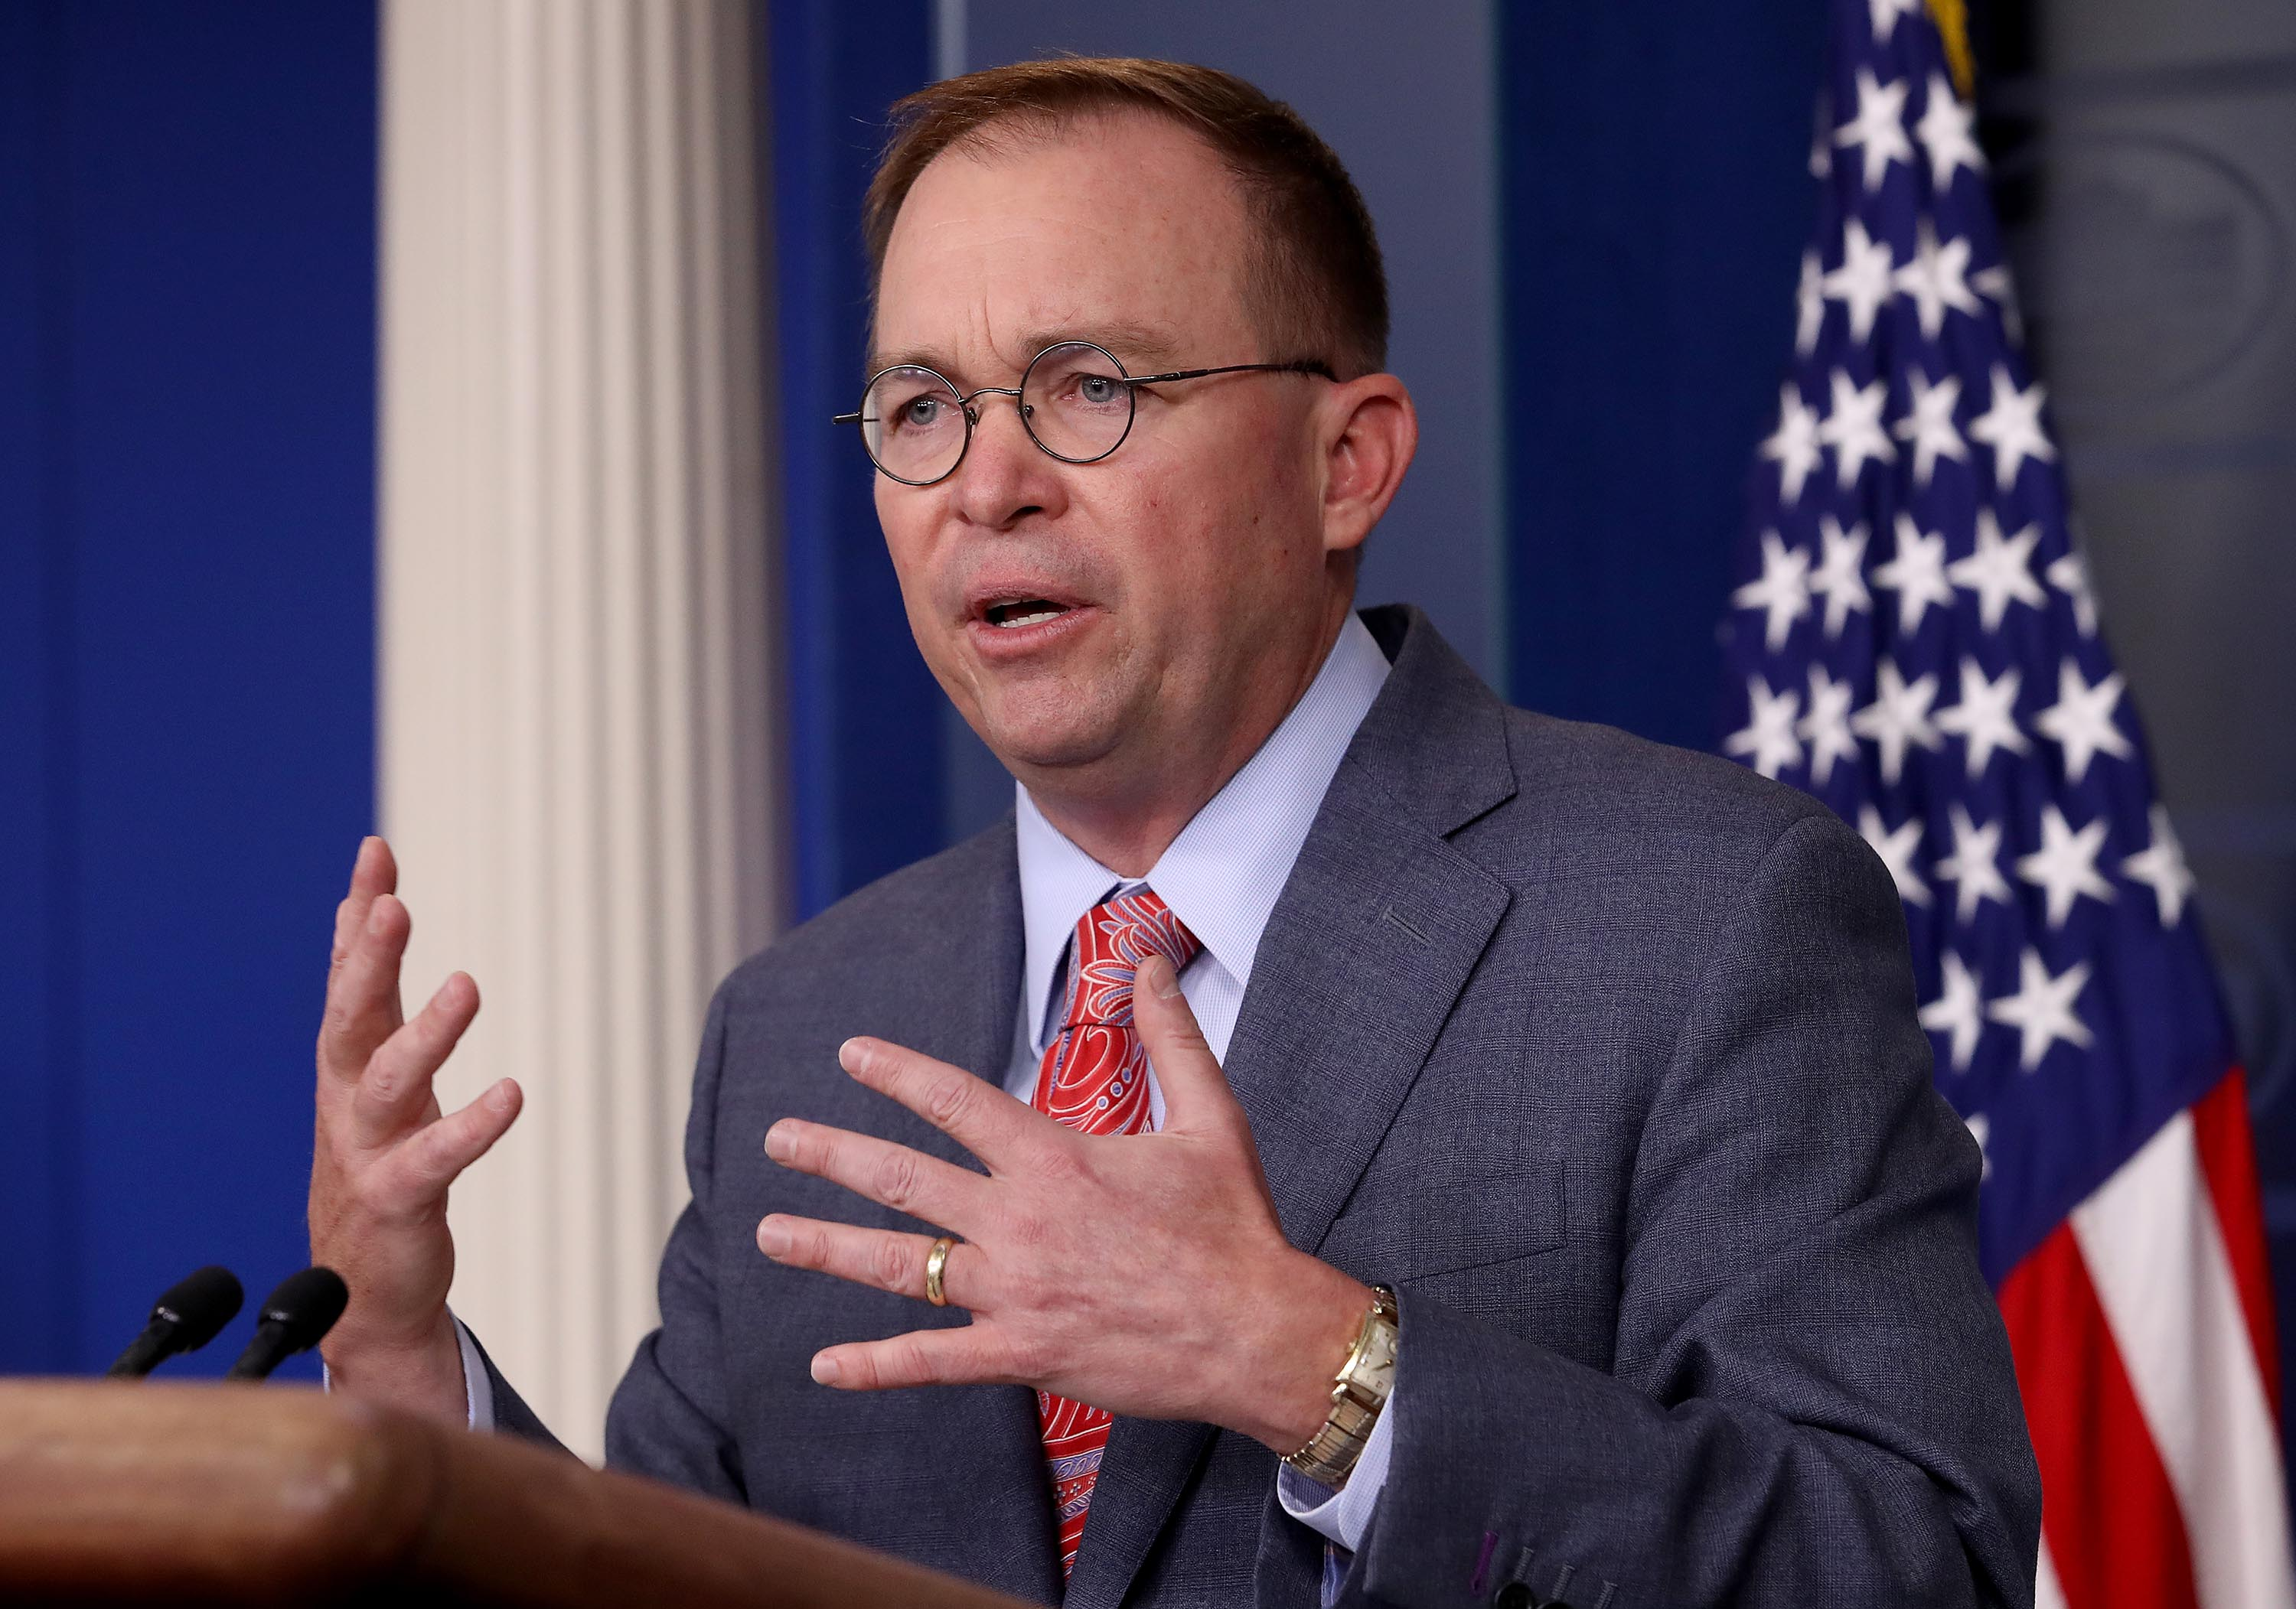 Washington Post: Mulvaney says GOP has been inconsistent on deficit concerns under Trump